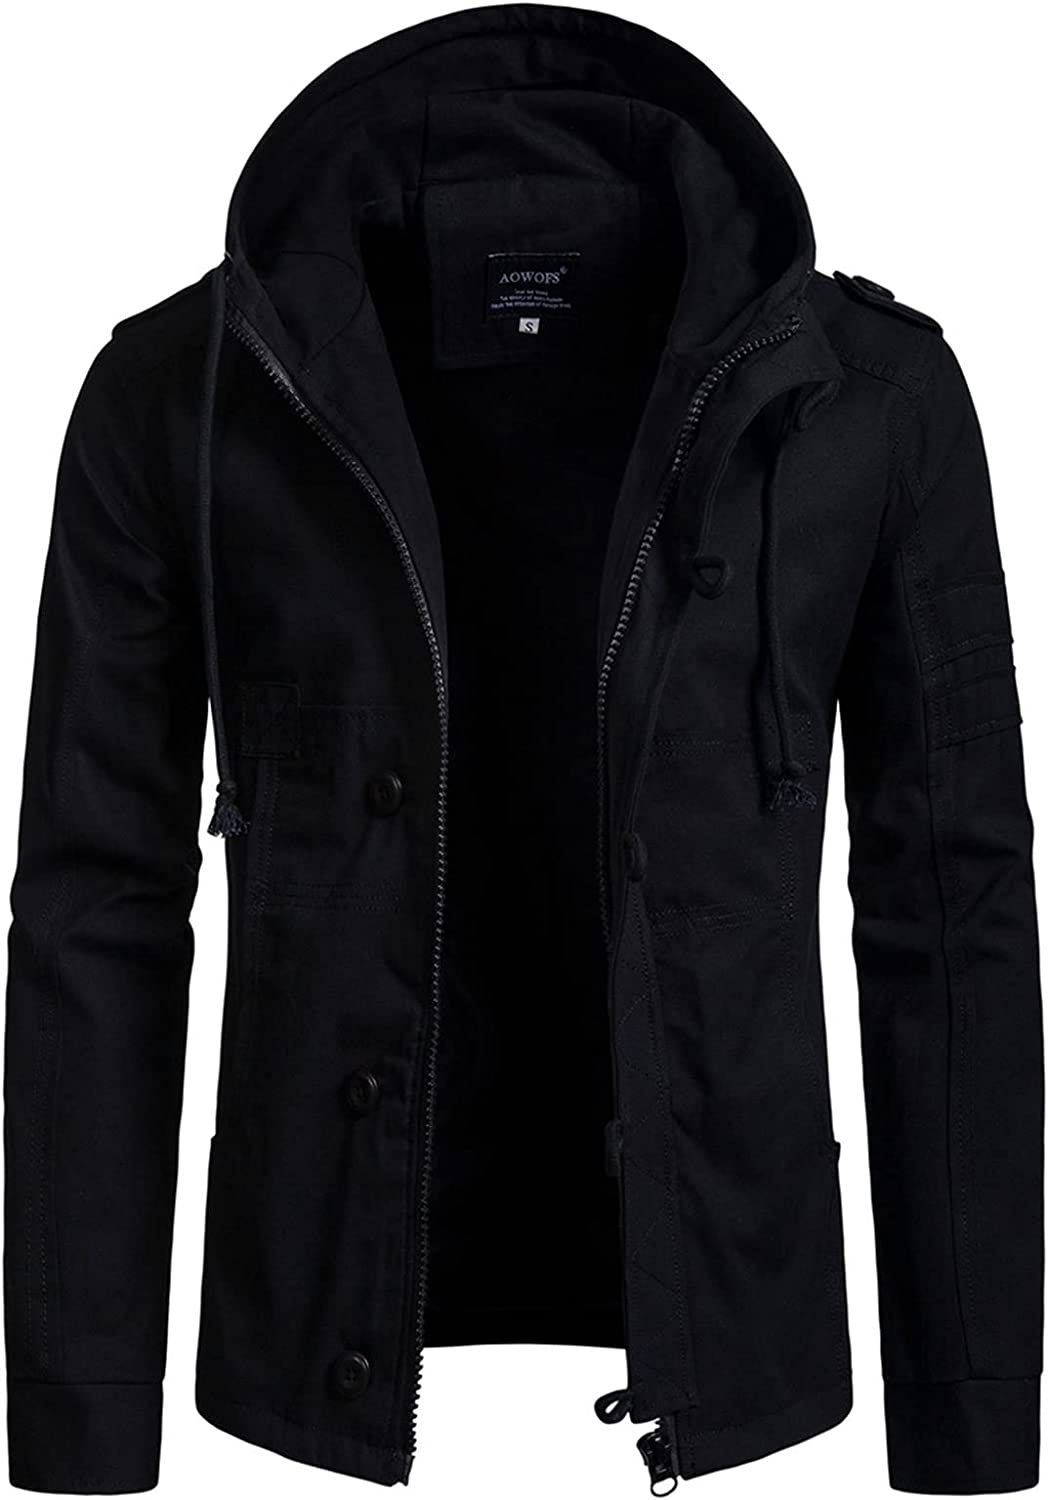 Men's Military Hooded Jackets,Solid Color Long-Sleeved Cardigan Jacket,for Casual Wear for Teenagers